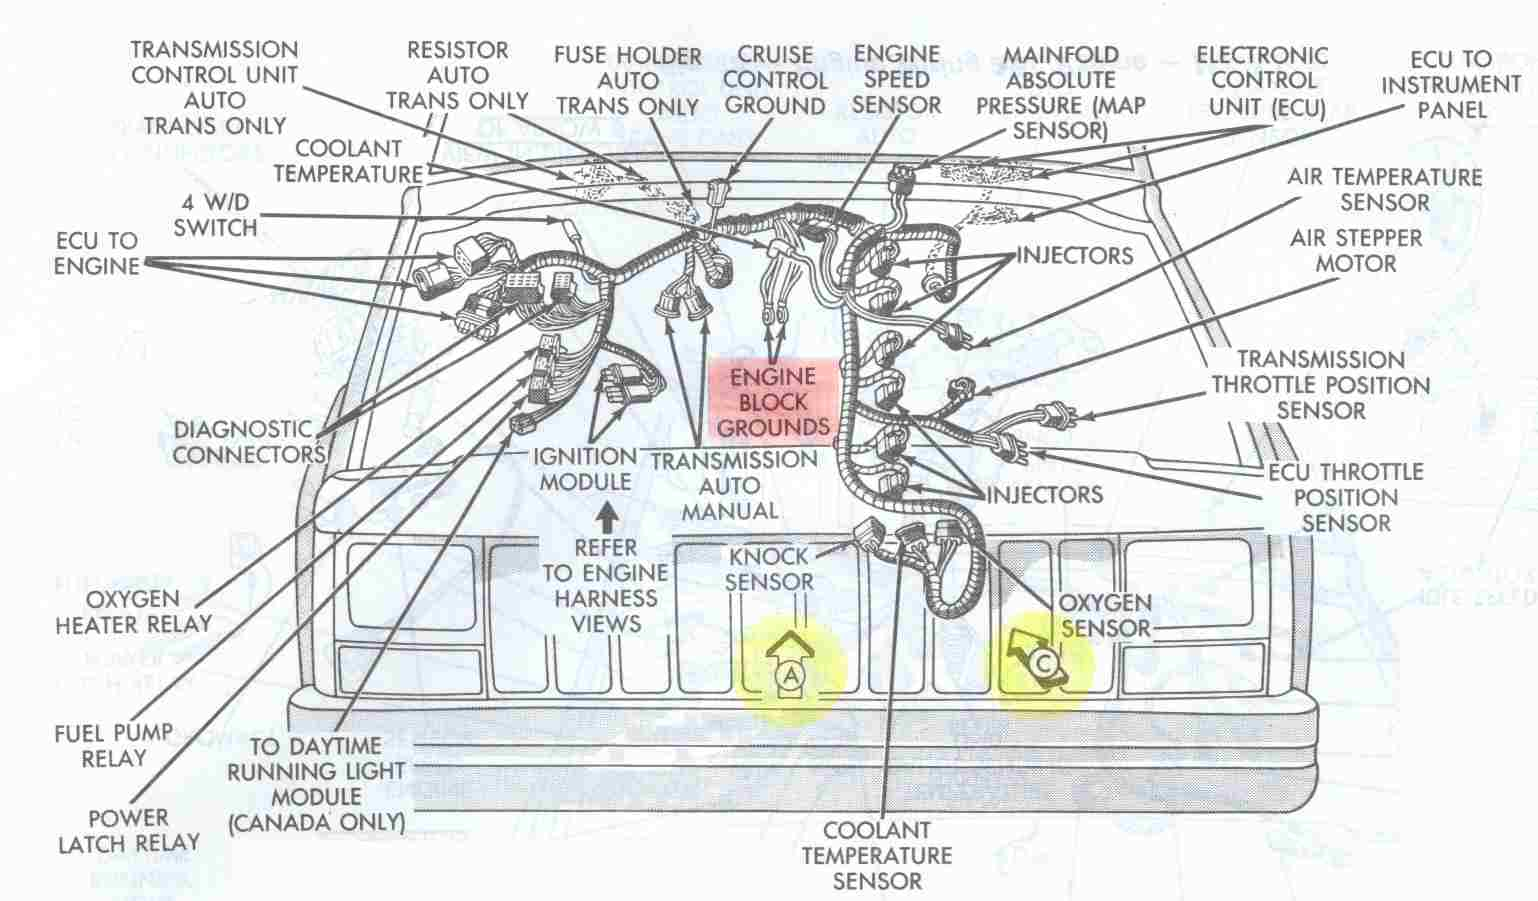 Electrical_Engine_Ground_Points_Overview jeep cherokee electrical diagnosing erratic behavior of engine 2004 jeep grand cherokee battery cable harness at panicattacktreatment.co